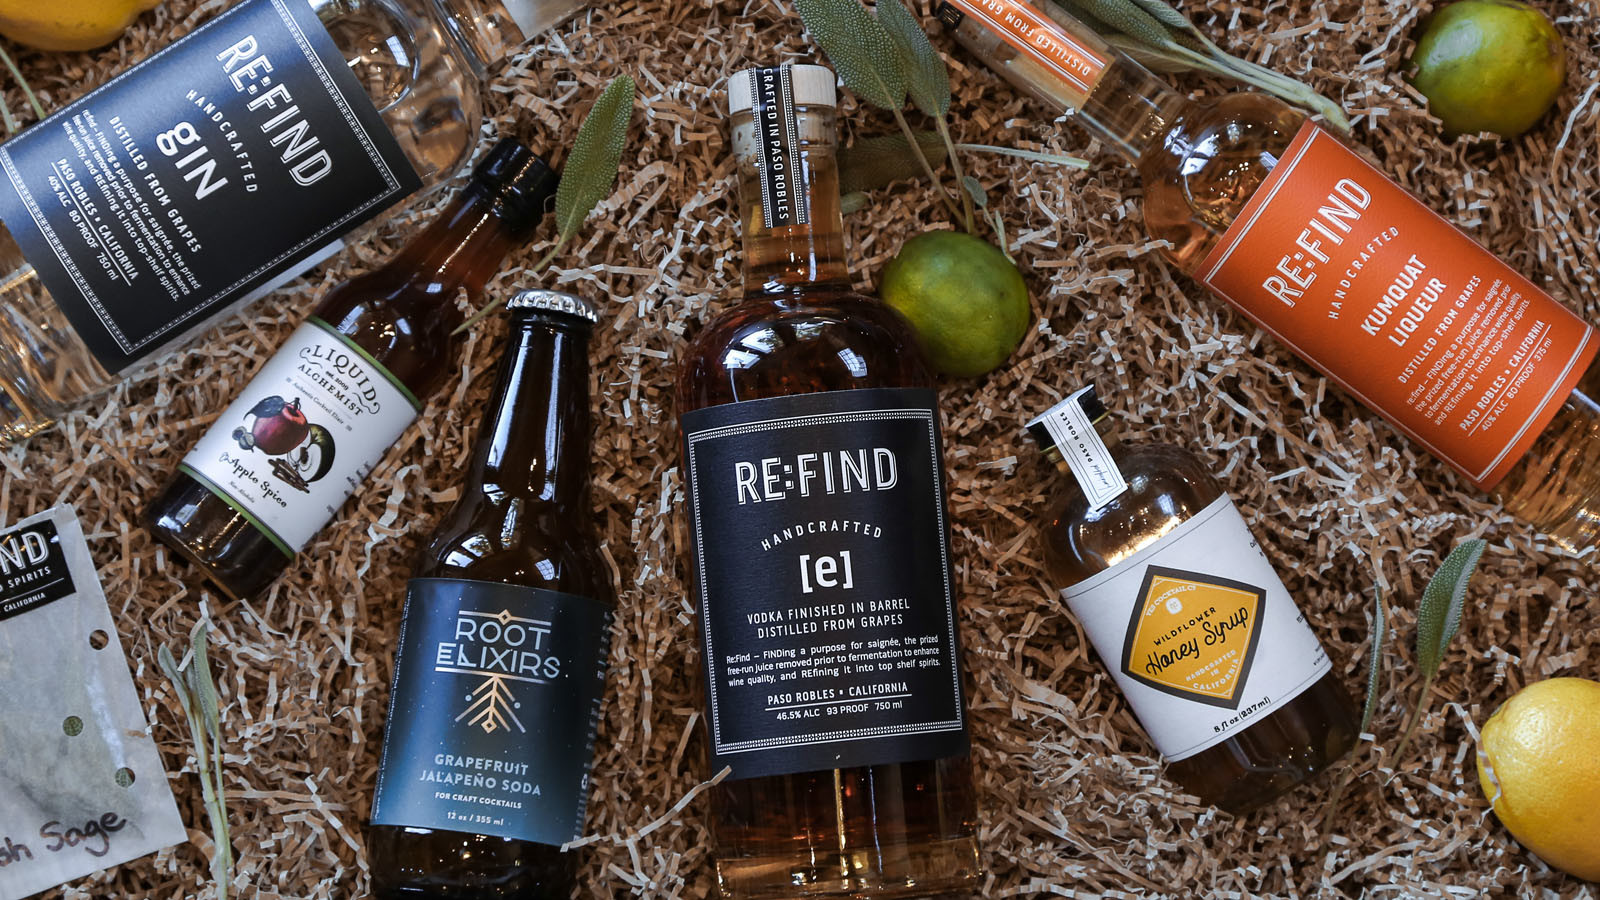 The Re:Find cocktail kit comes with ingredients and recipes for craft cocktails.